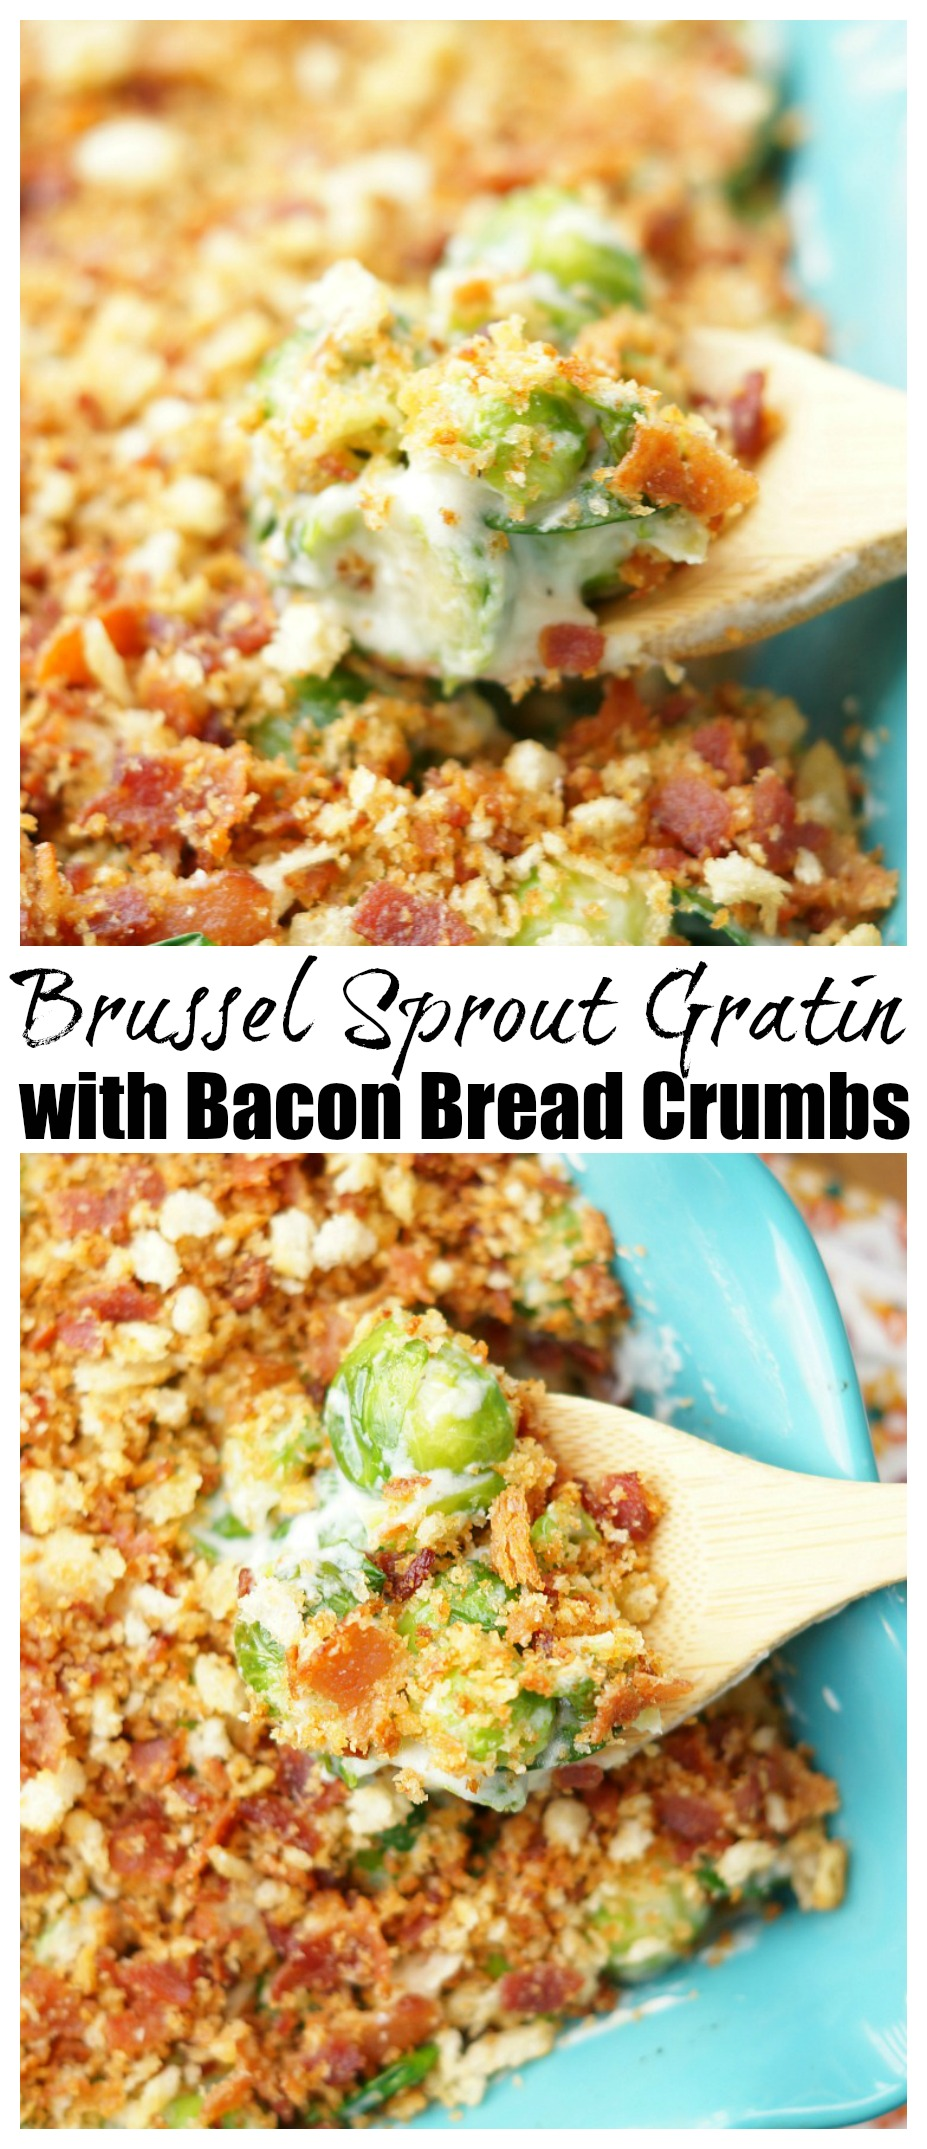 Brussel Sprout Gratin with Bacon Breadcrumbs